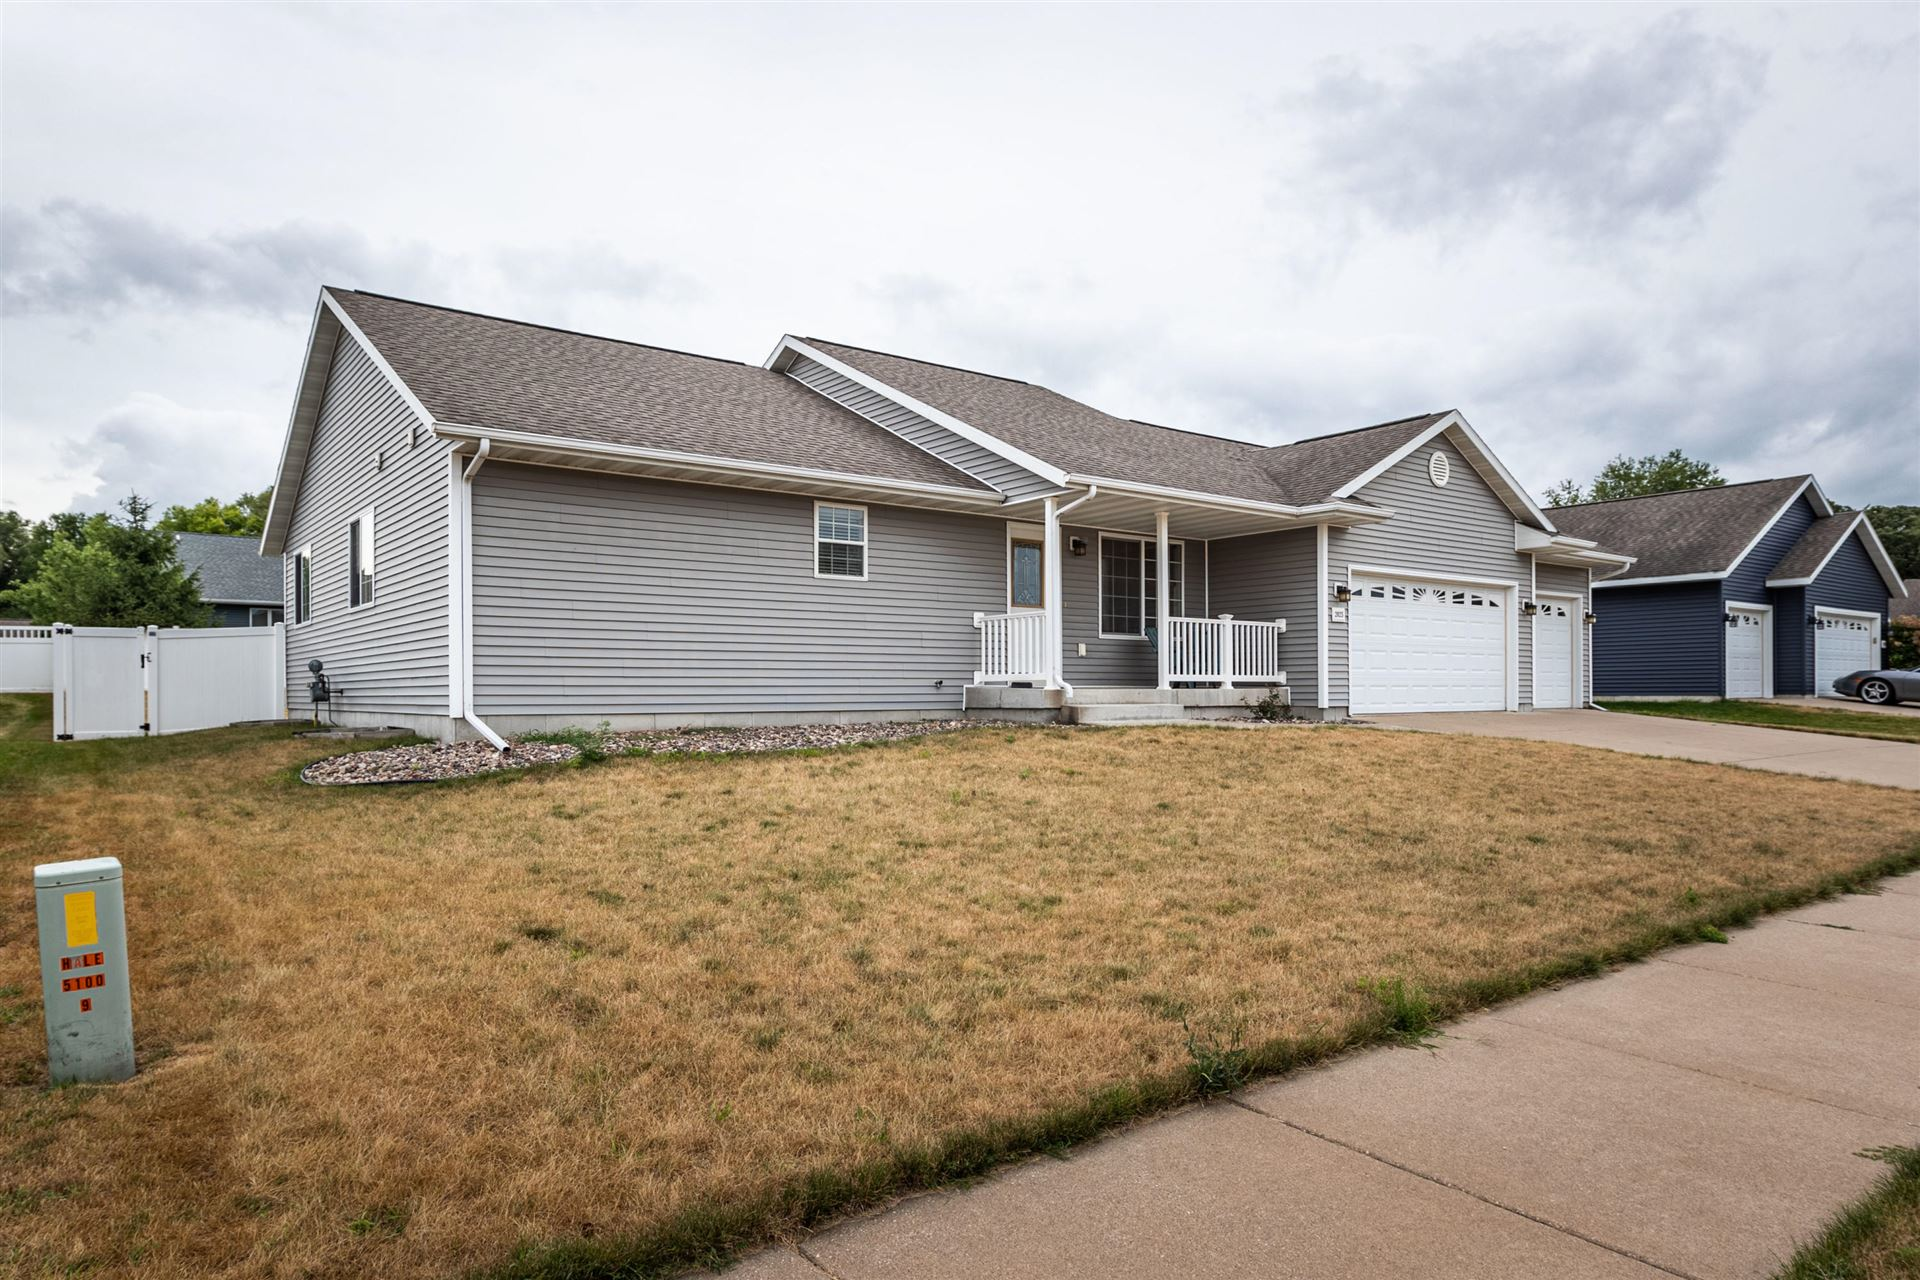 2025 Crooked Ave., Holmen, WI 54636 - MLS#: 1703744